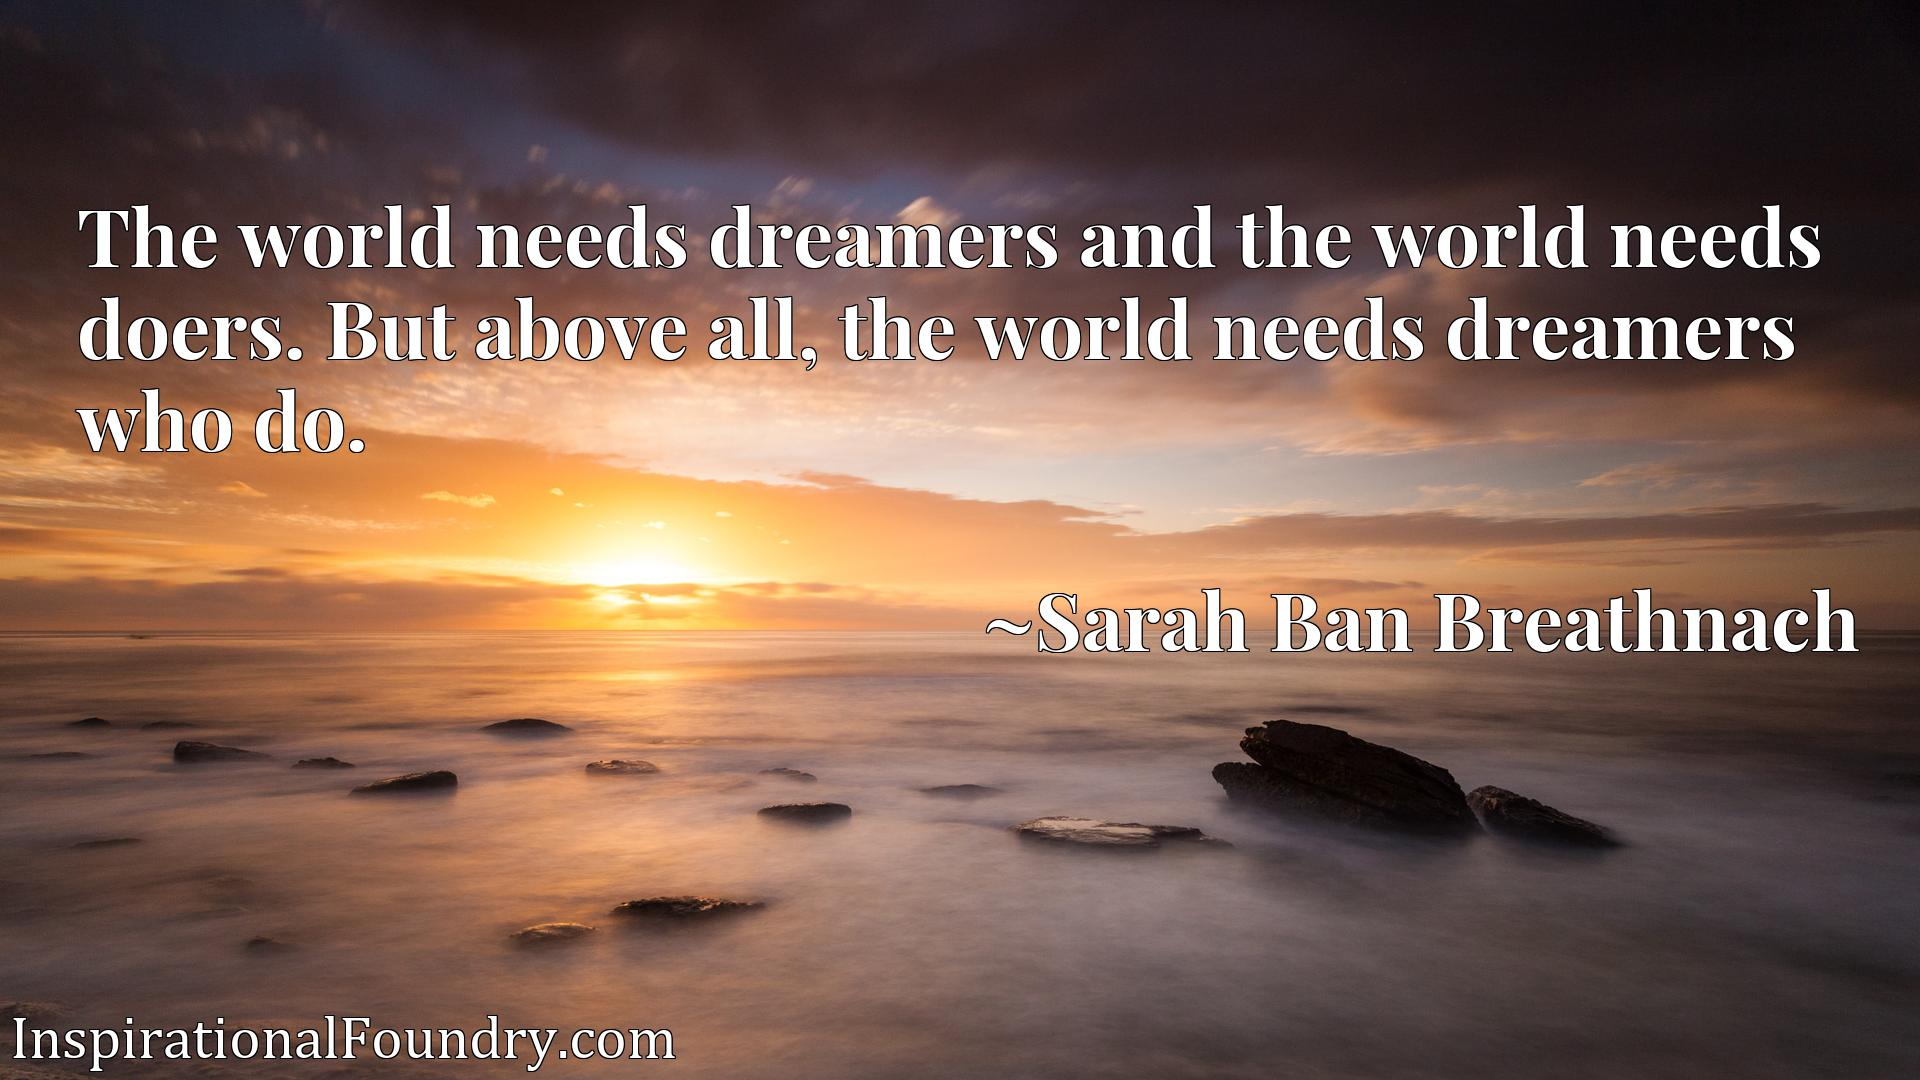 The world needs dreamers and the world needs doers. But above all, the world needs dreamers who do.